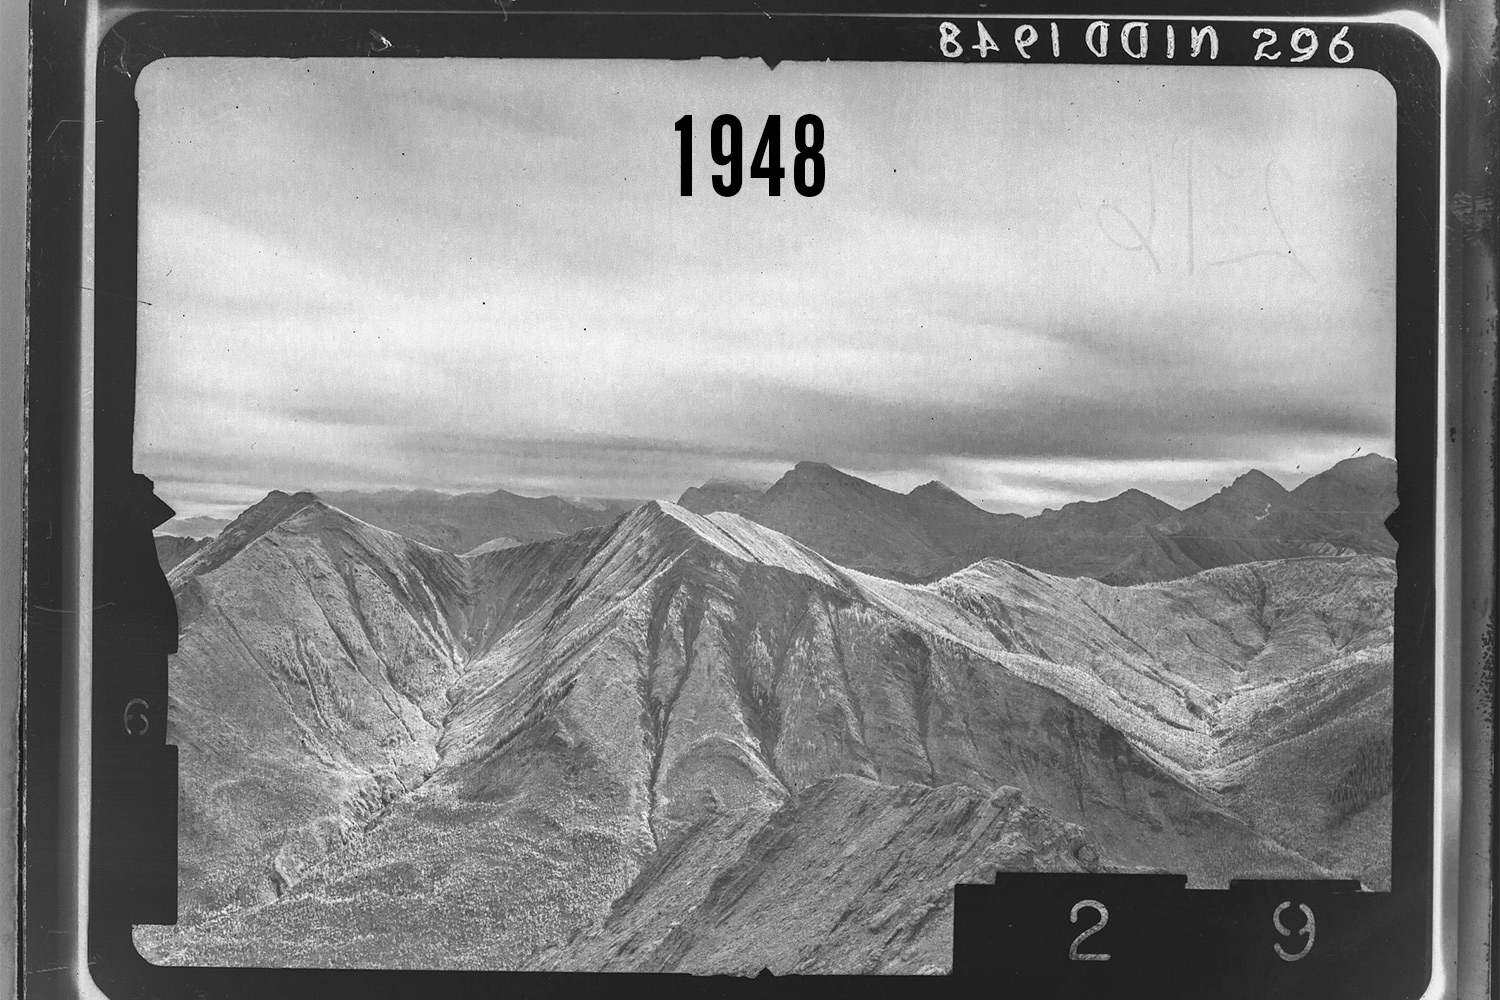 Historical Photograph taken on the south side of Mist Mountain by surveyors. Photo courtesy of the Mountain Legacy Project.